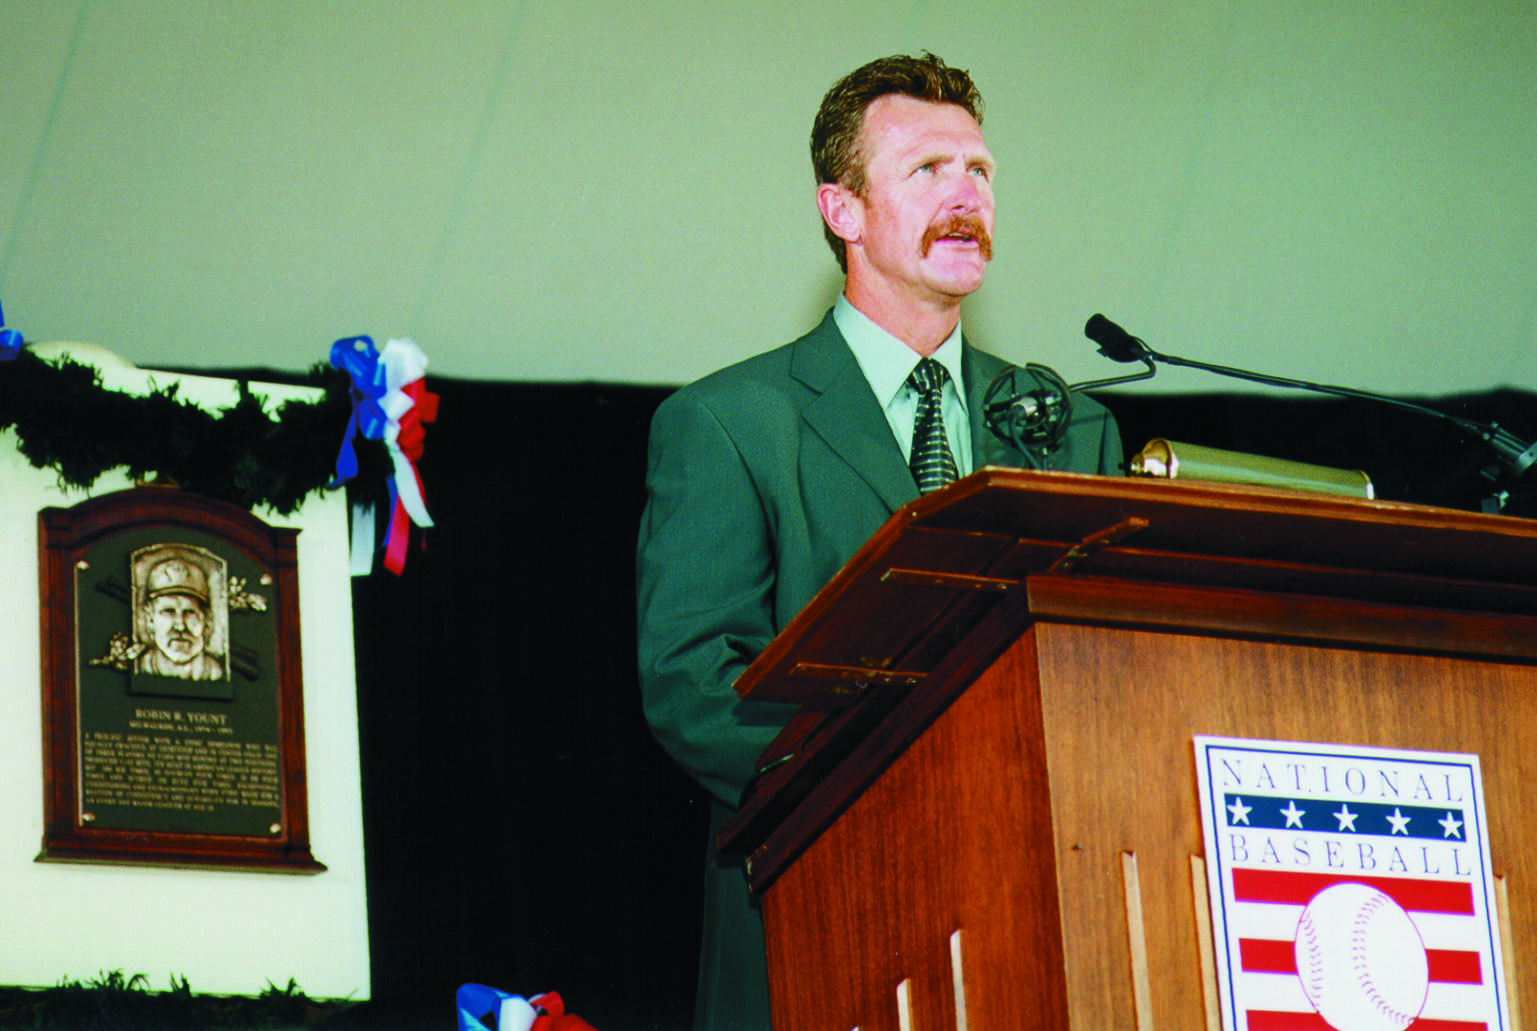 Robin Yount delivers his speech upon being inducted to the National Baseball Hall of Fame on July 25, 1999. (National Baseball Hall of Fame Library)